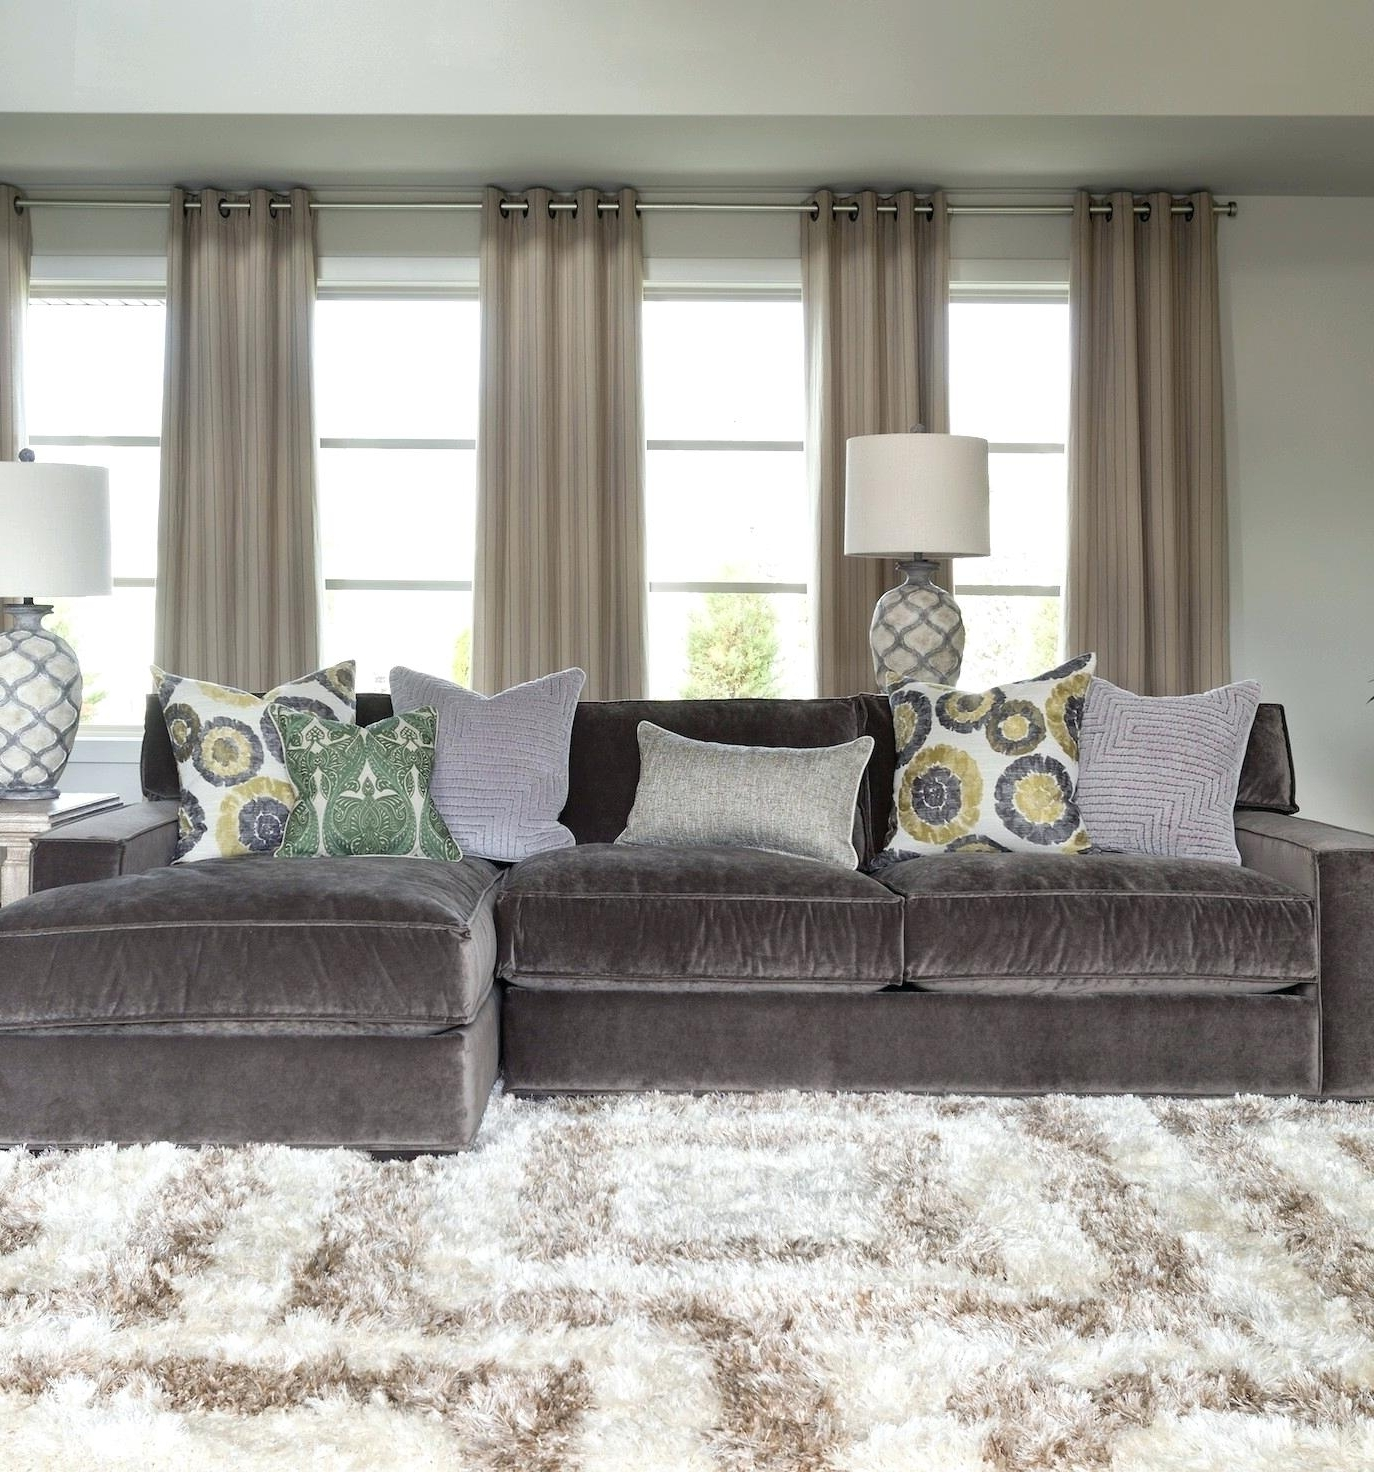 Huge Sofas With Popular Oversized Sectional Sofa Couches For Sale Set Huge Sofas (View 15 of 20)